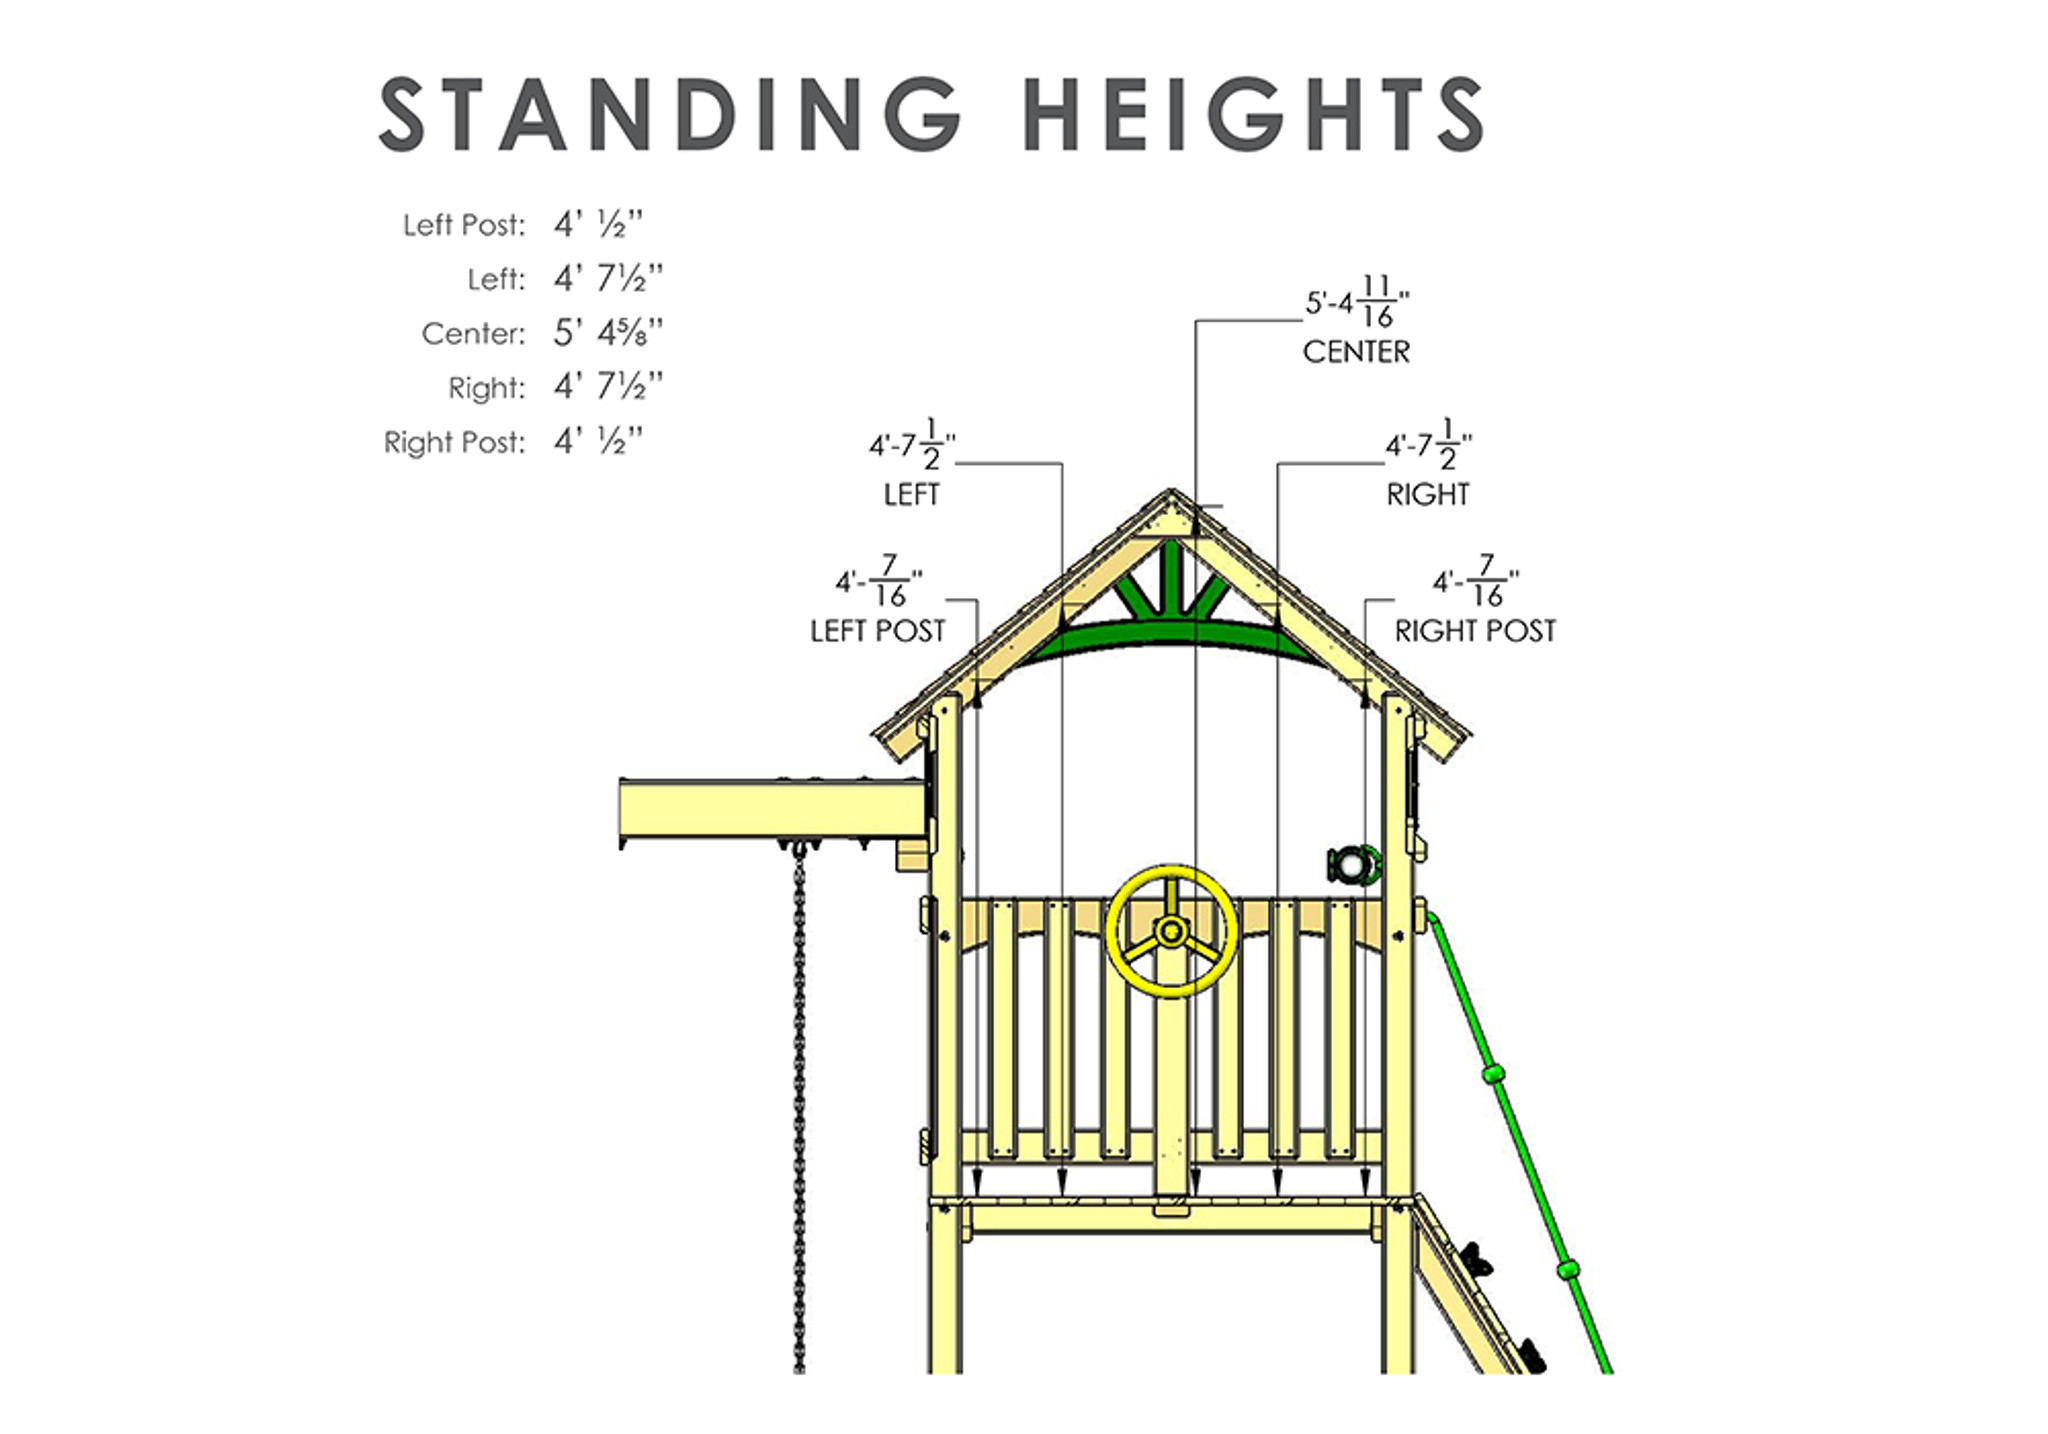 Wood Roof Standing Heights View of Outing w/ Monkey Bars Swingset from Playnation